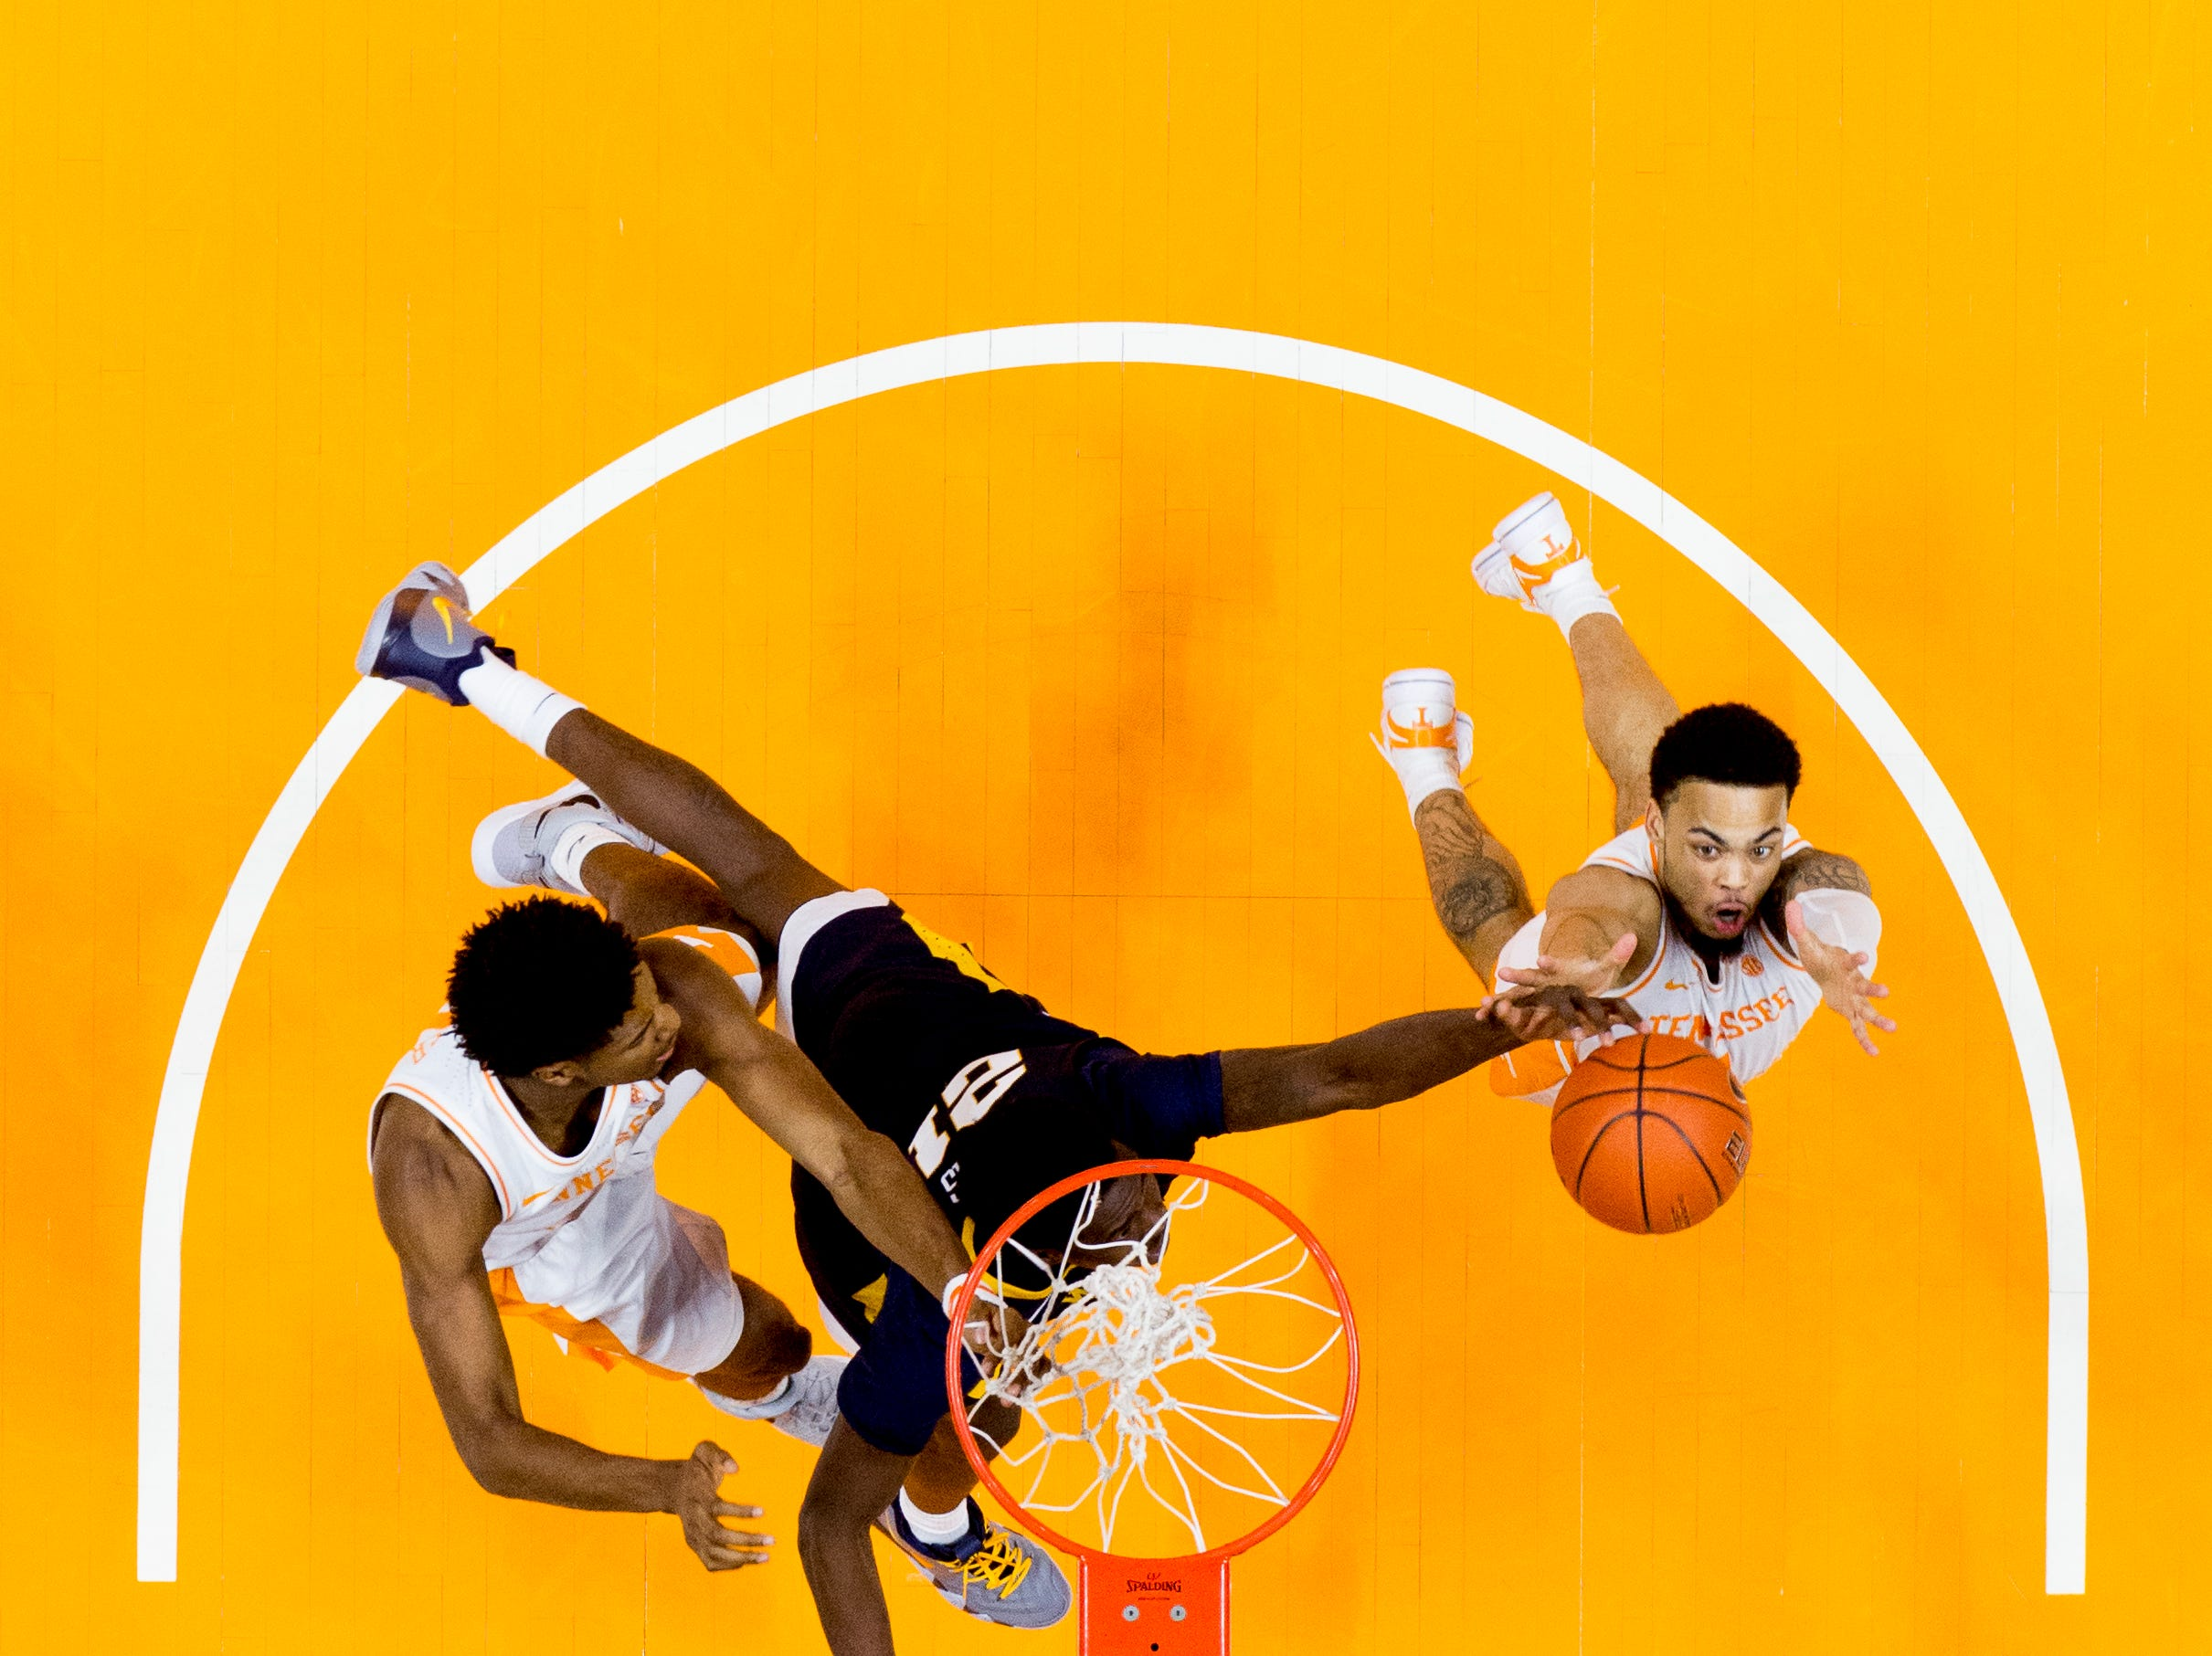 Tennessee guard Jordan Bone (0) grabs the rebound from West Virginia forward Wesley Harris (21) during a SEC/Big 12 Challenge game between Tennessee and West Virginia at Thompson-Boling Arena in Knoxville, Tennessee on Saturday, January 26, 2019.